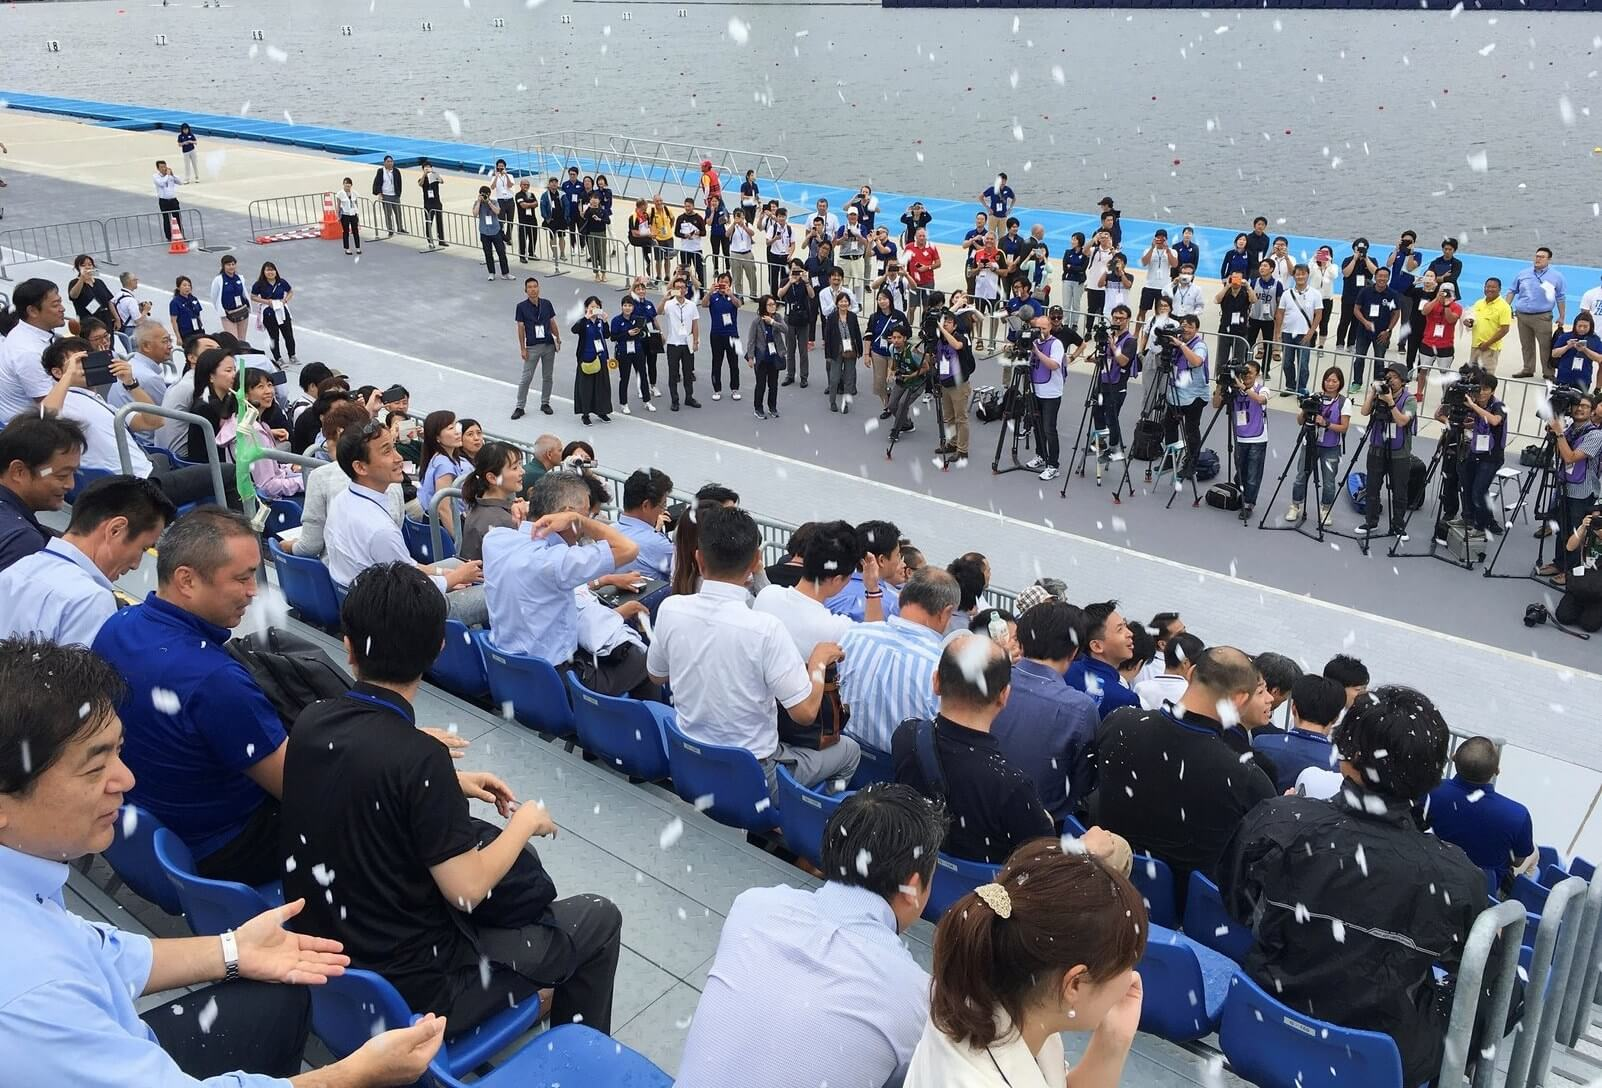 Tokyo Olympic games organizers could use fake snow to keep crowds cool